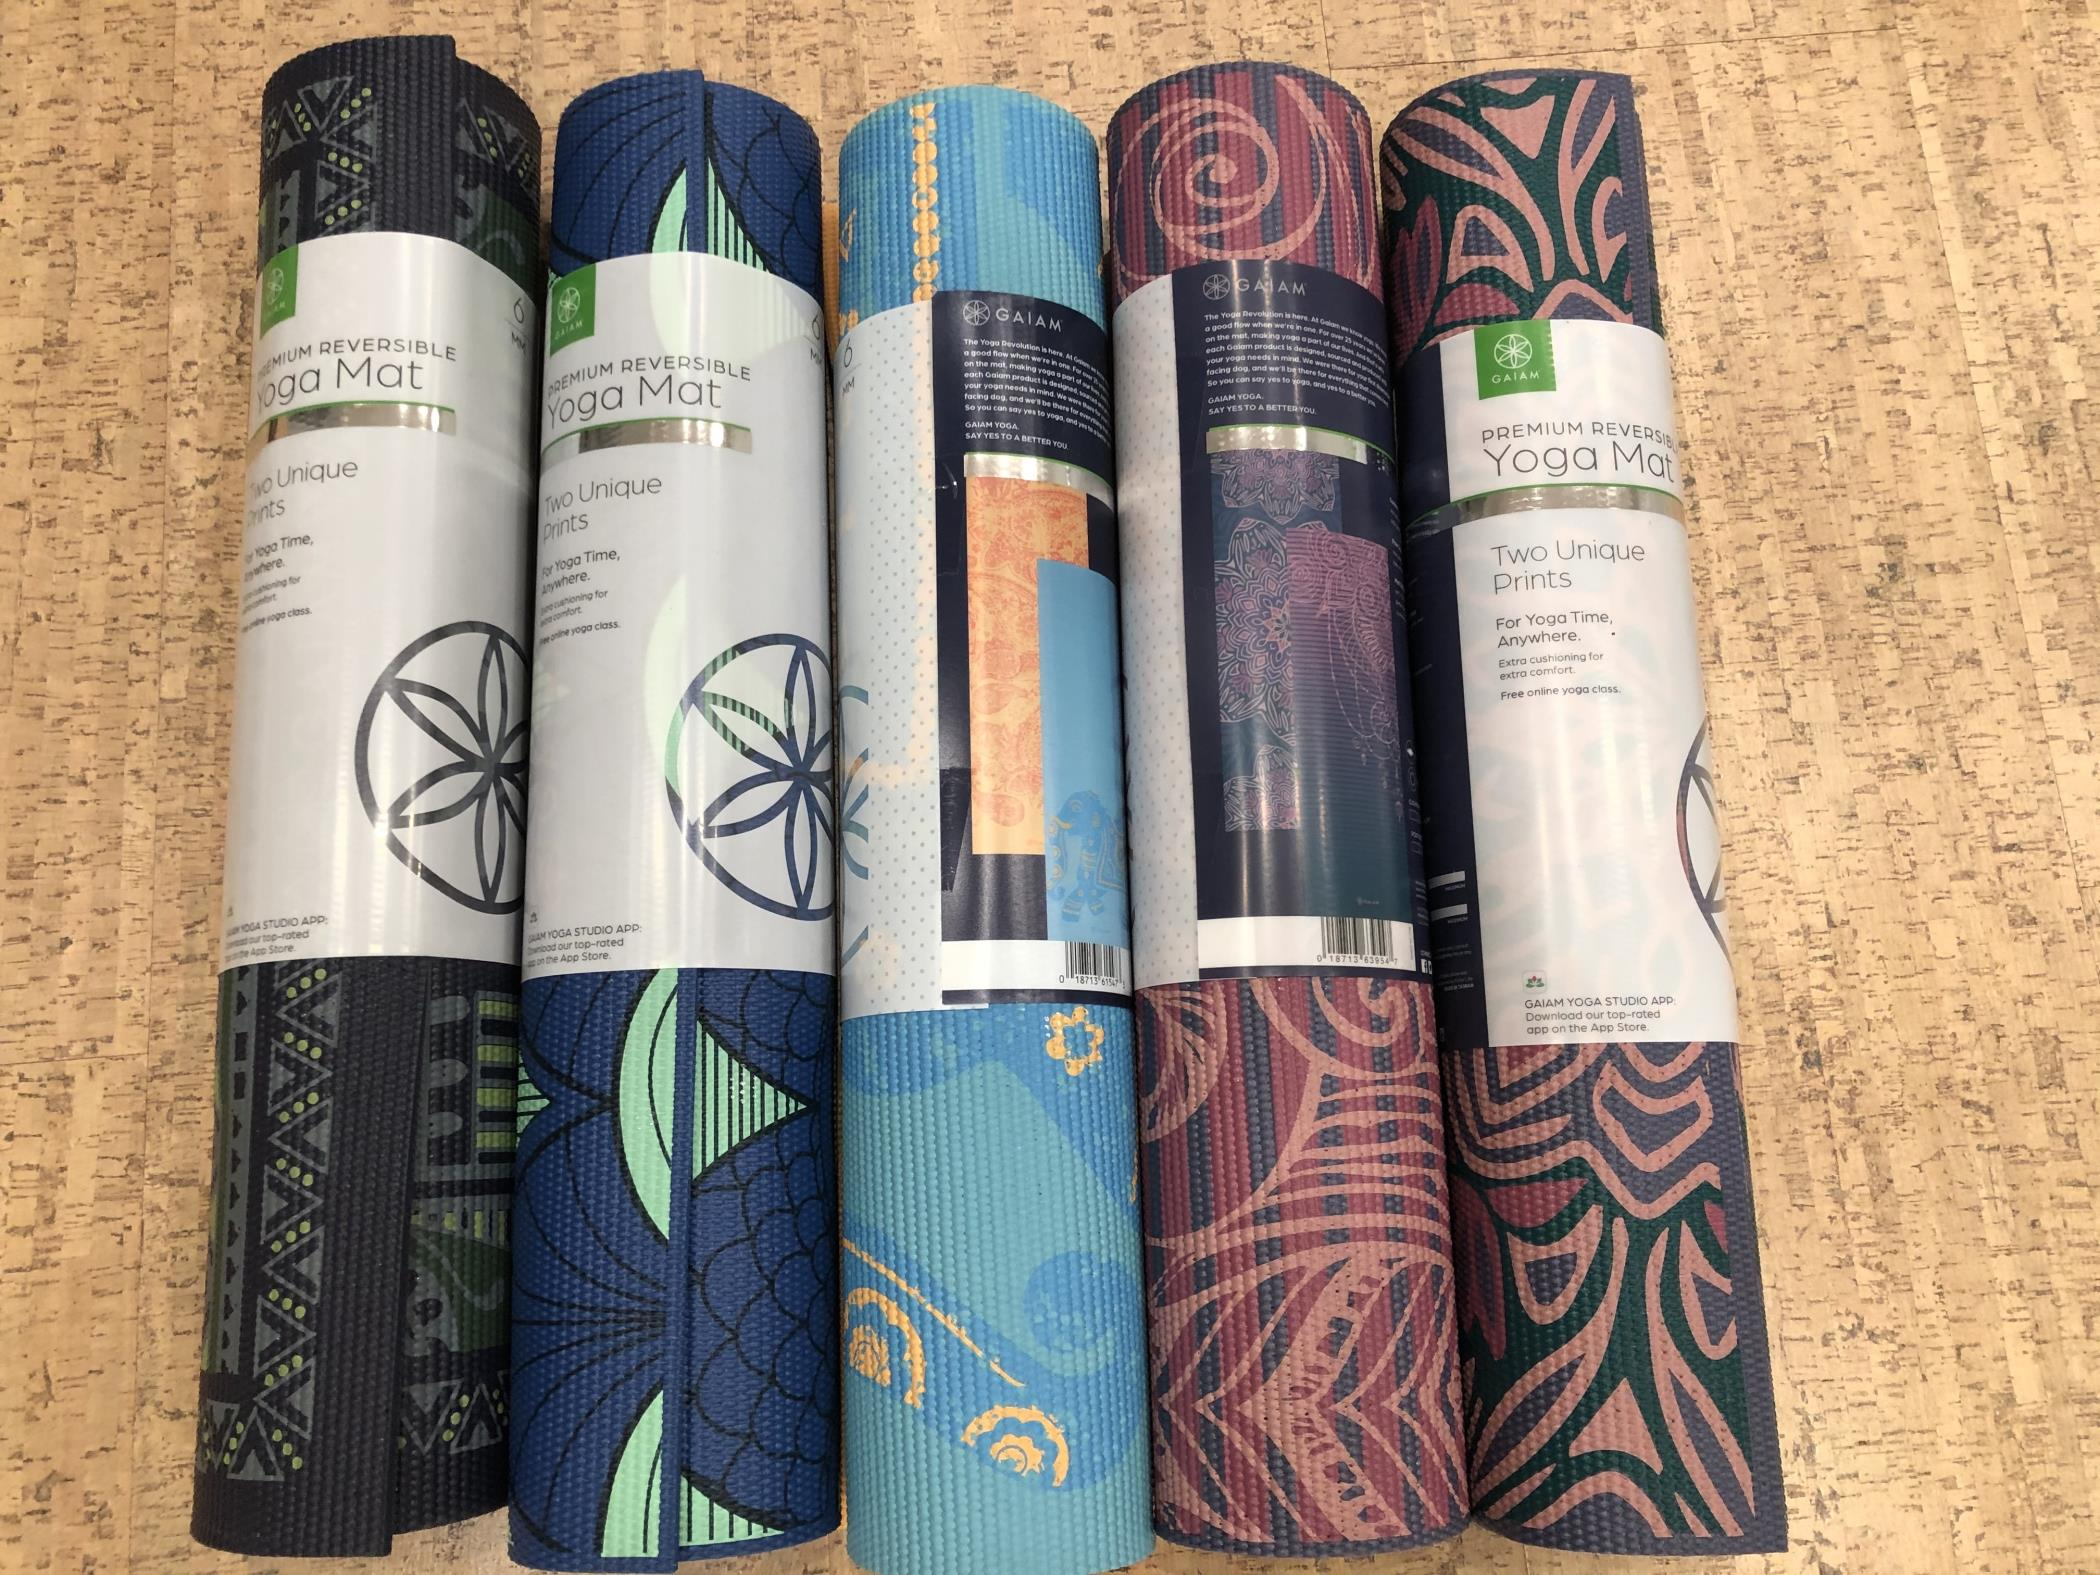 Yoga Mat - Extra Thick, Reversible